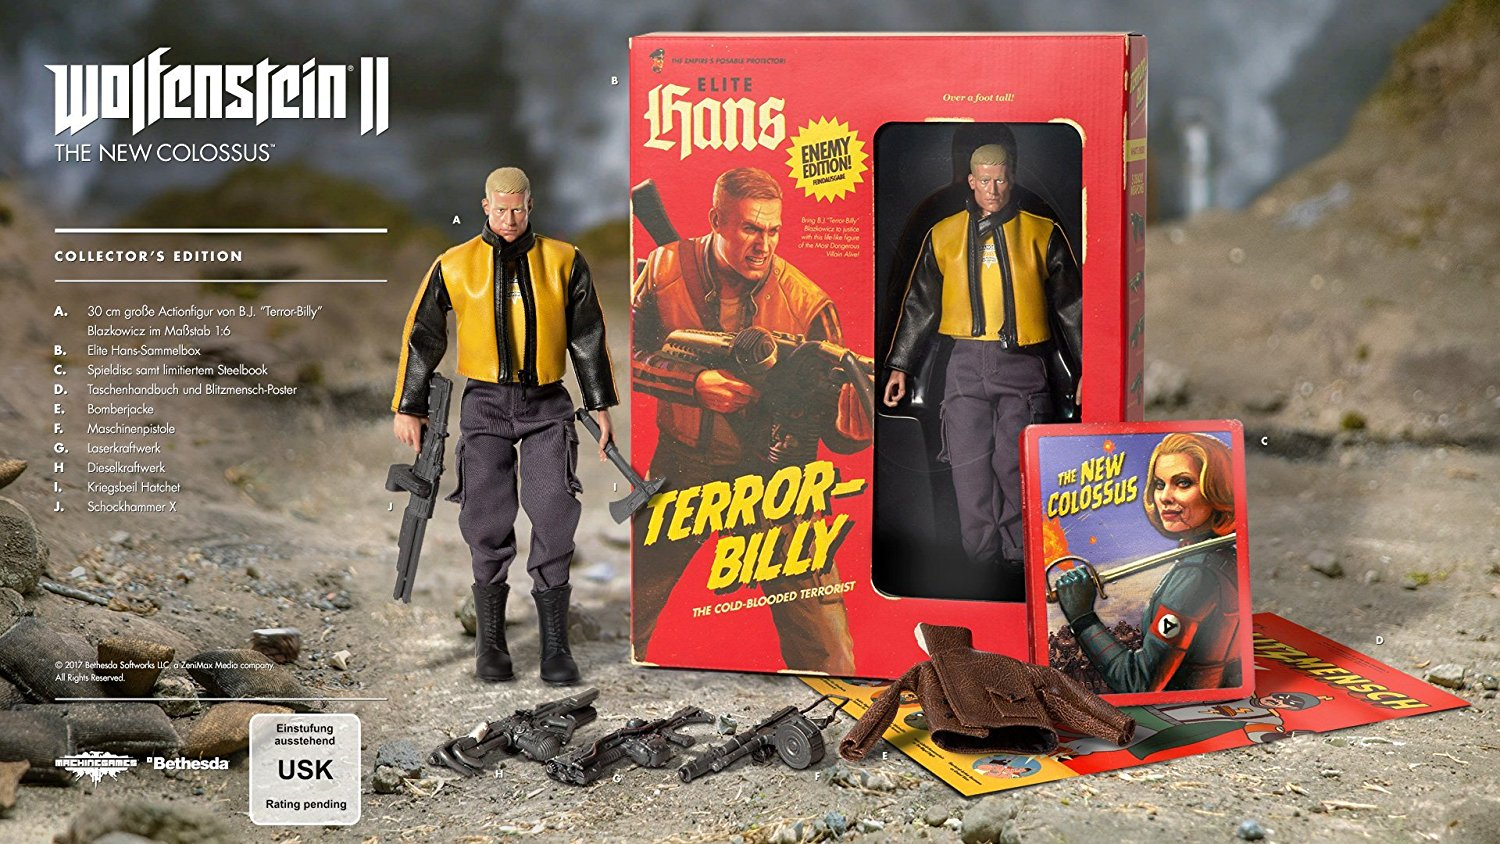 Wolfenstein II The New Colossus Collector's Edition